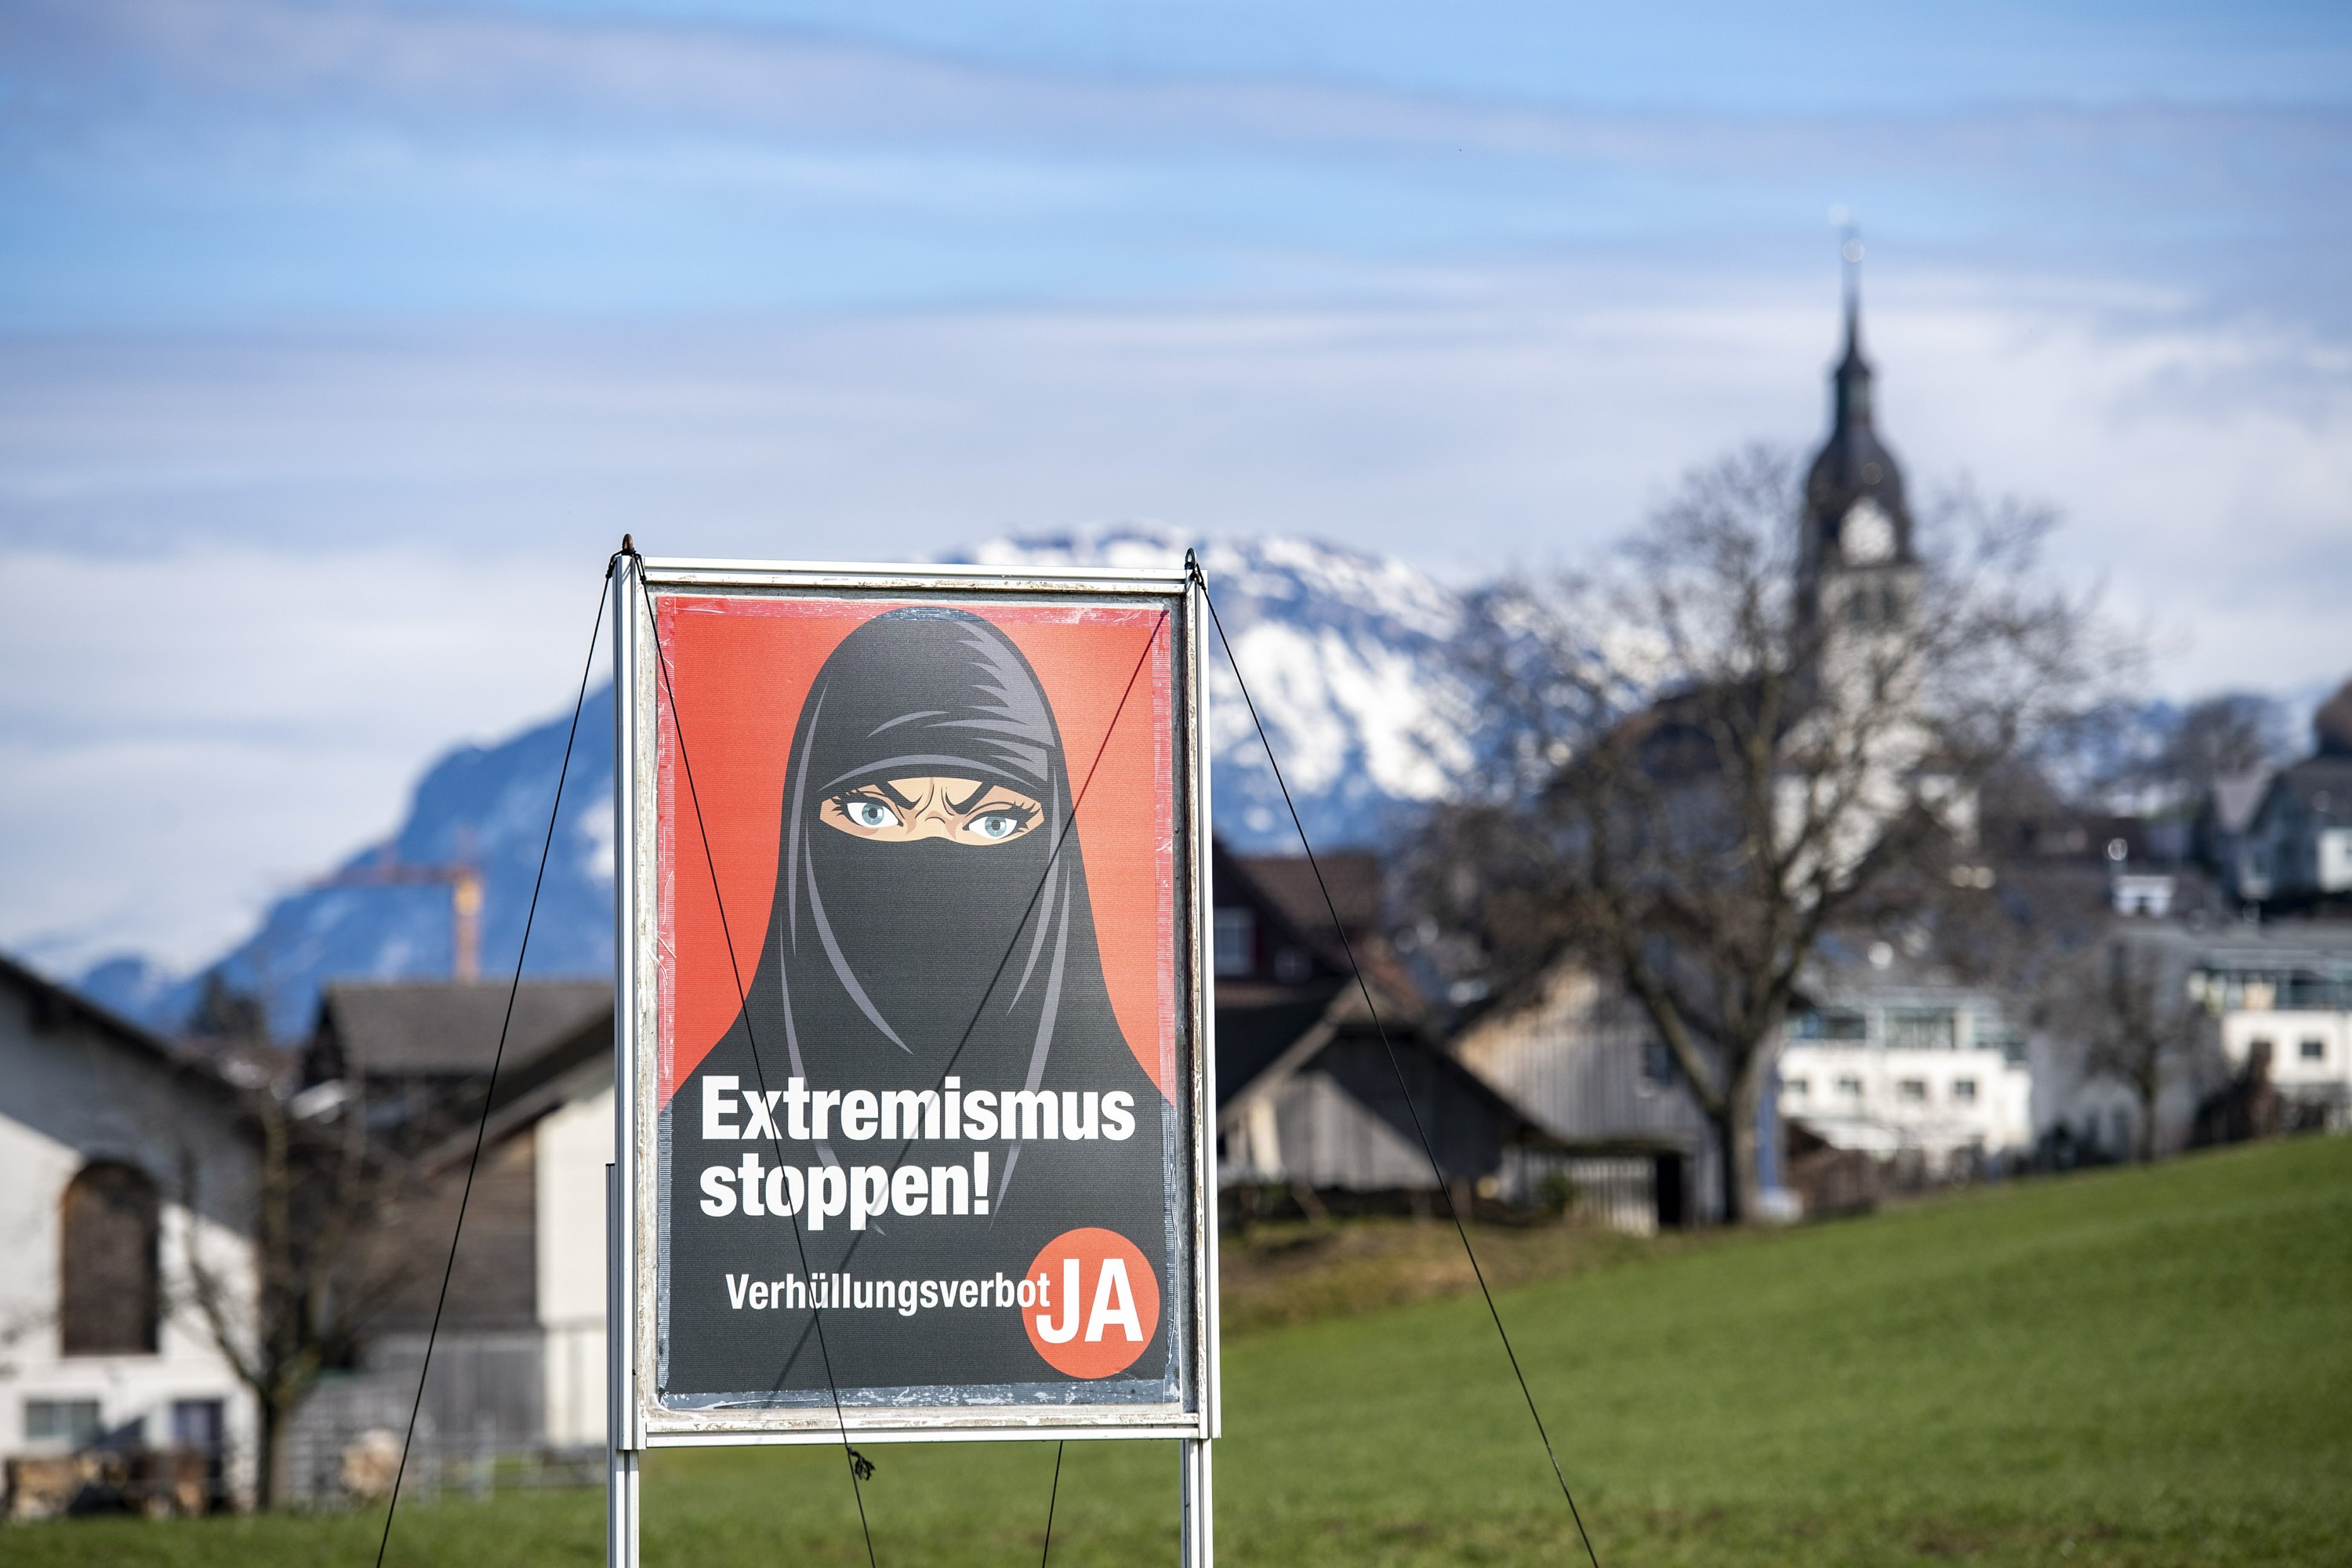 Swiss vote on proposal to ban face coverings in public - The Associated Press